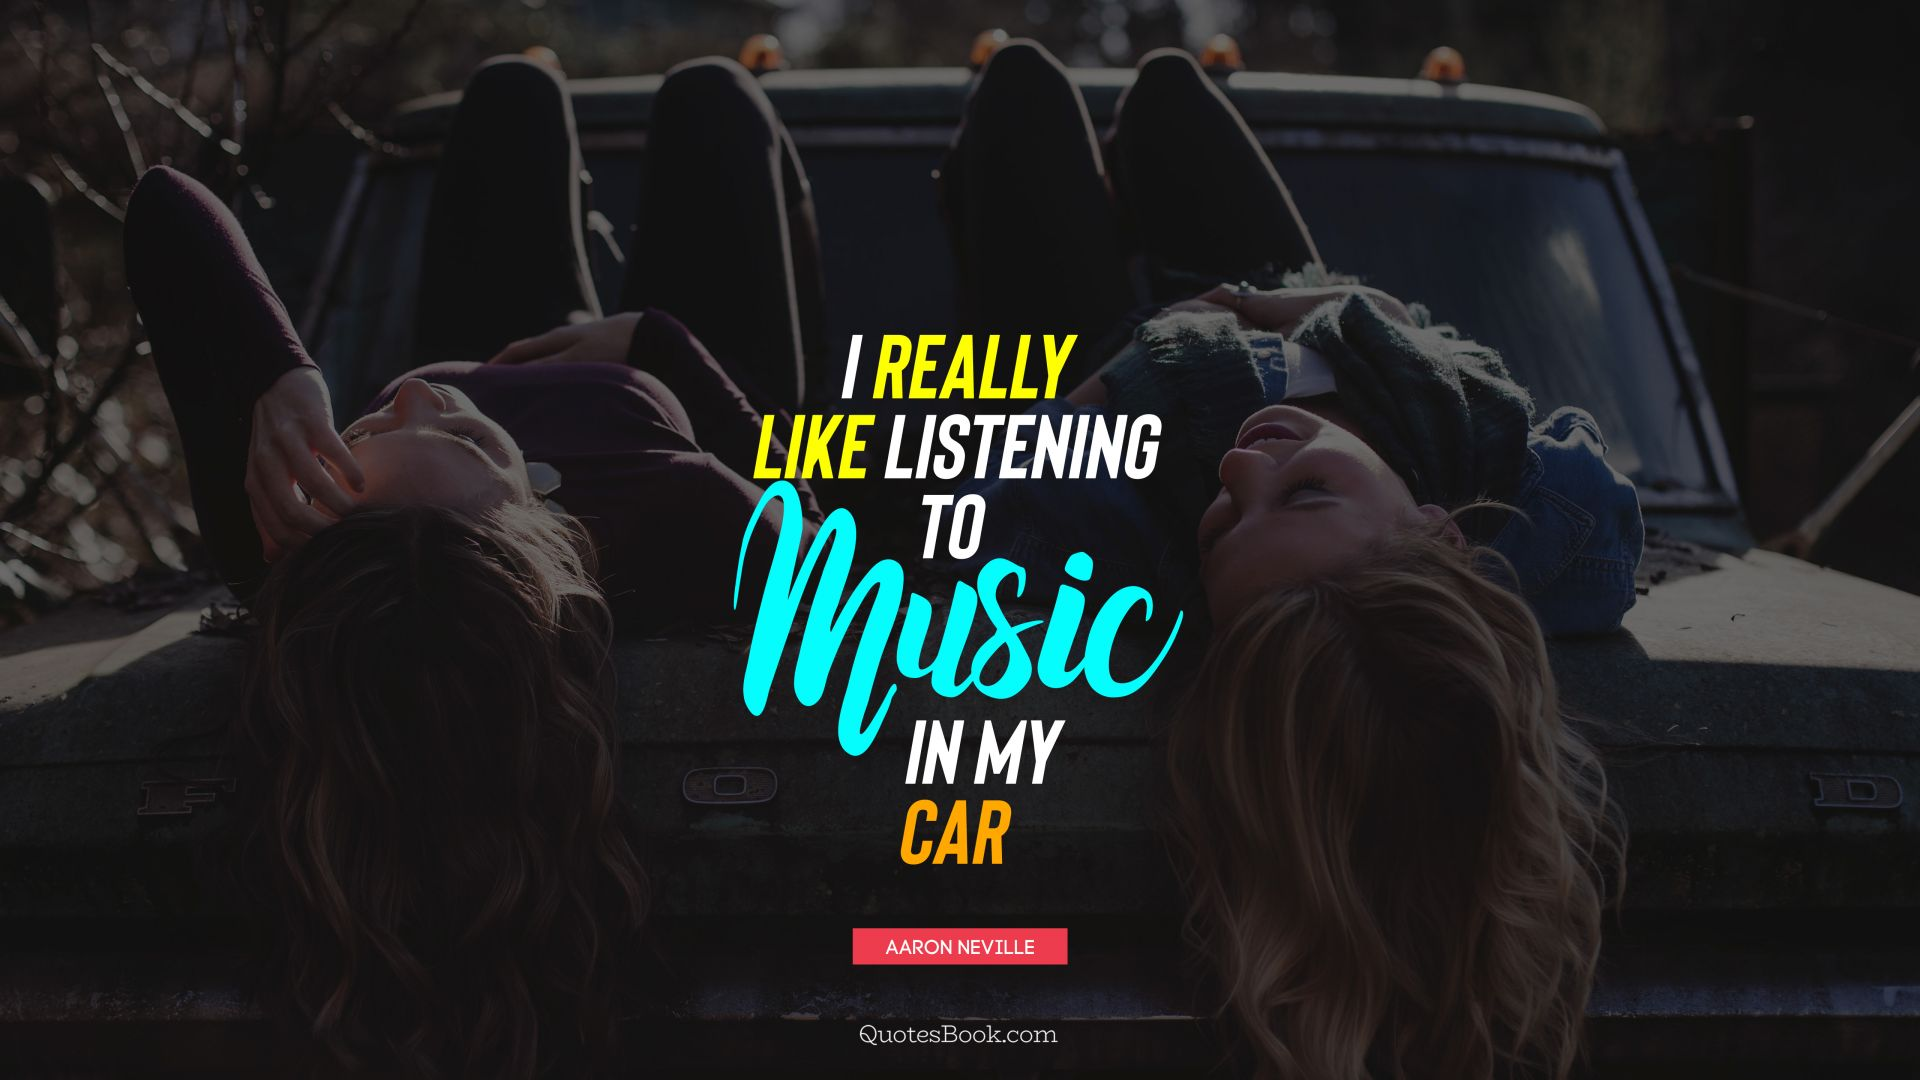 I really like listening to music in my car. - Quote by Aaron Neville